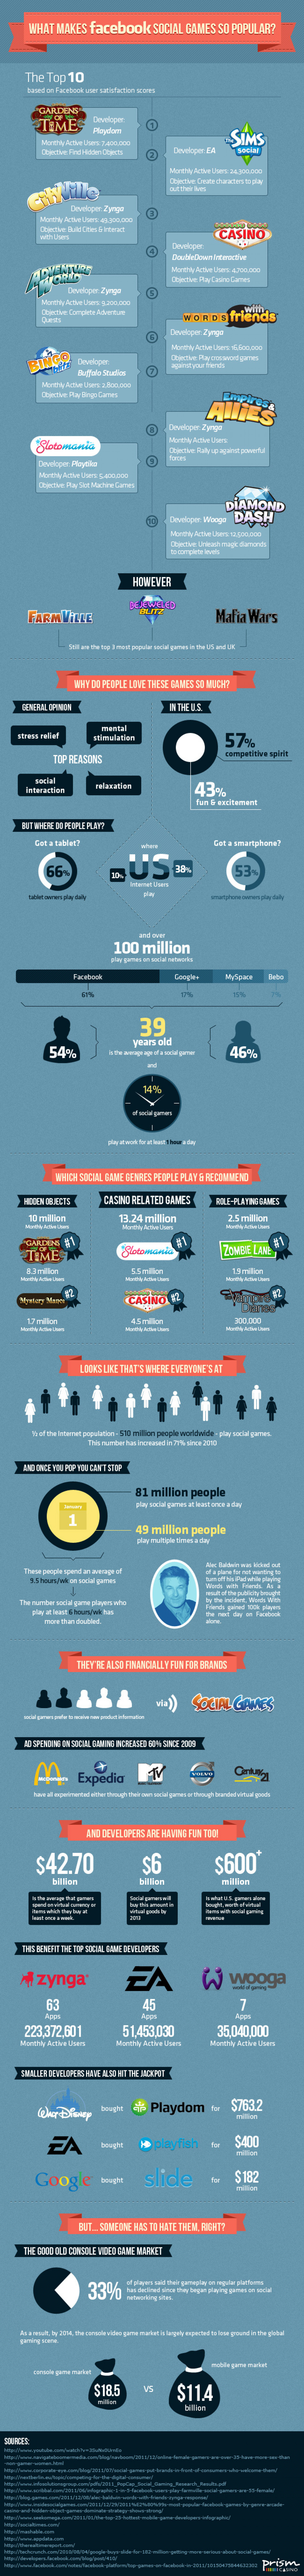 What Makes Facebook Social Games So Popular? Infographic